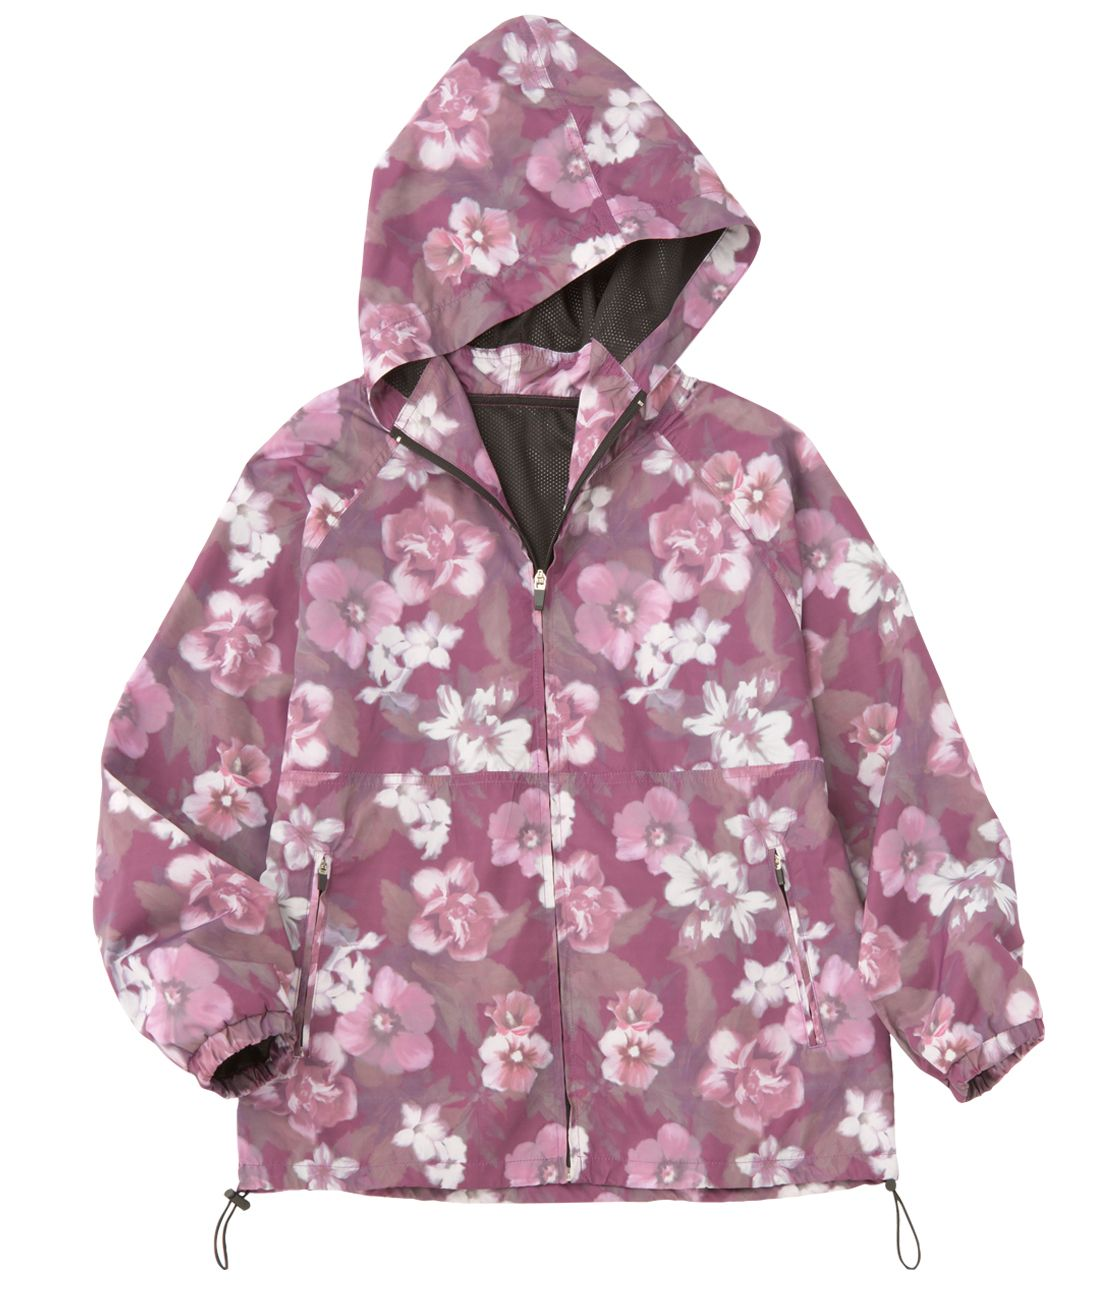 Flower Zip Hoody